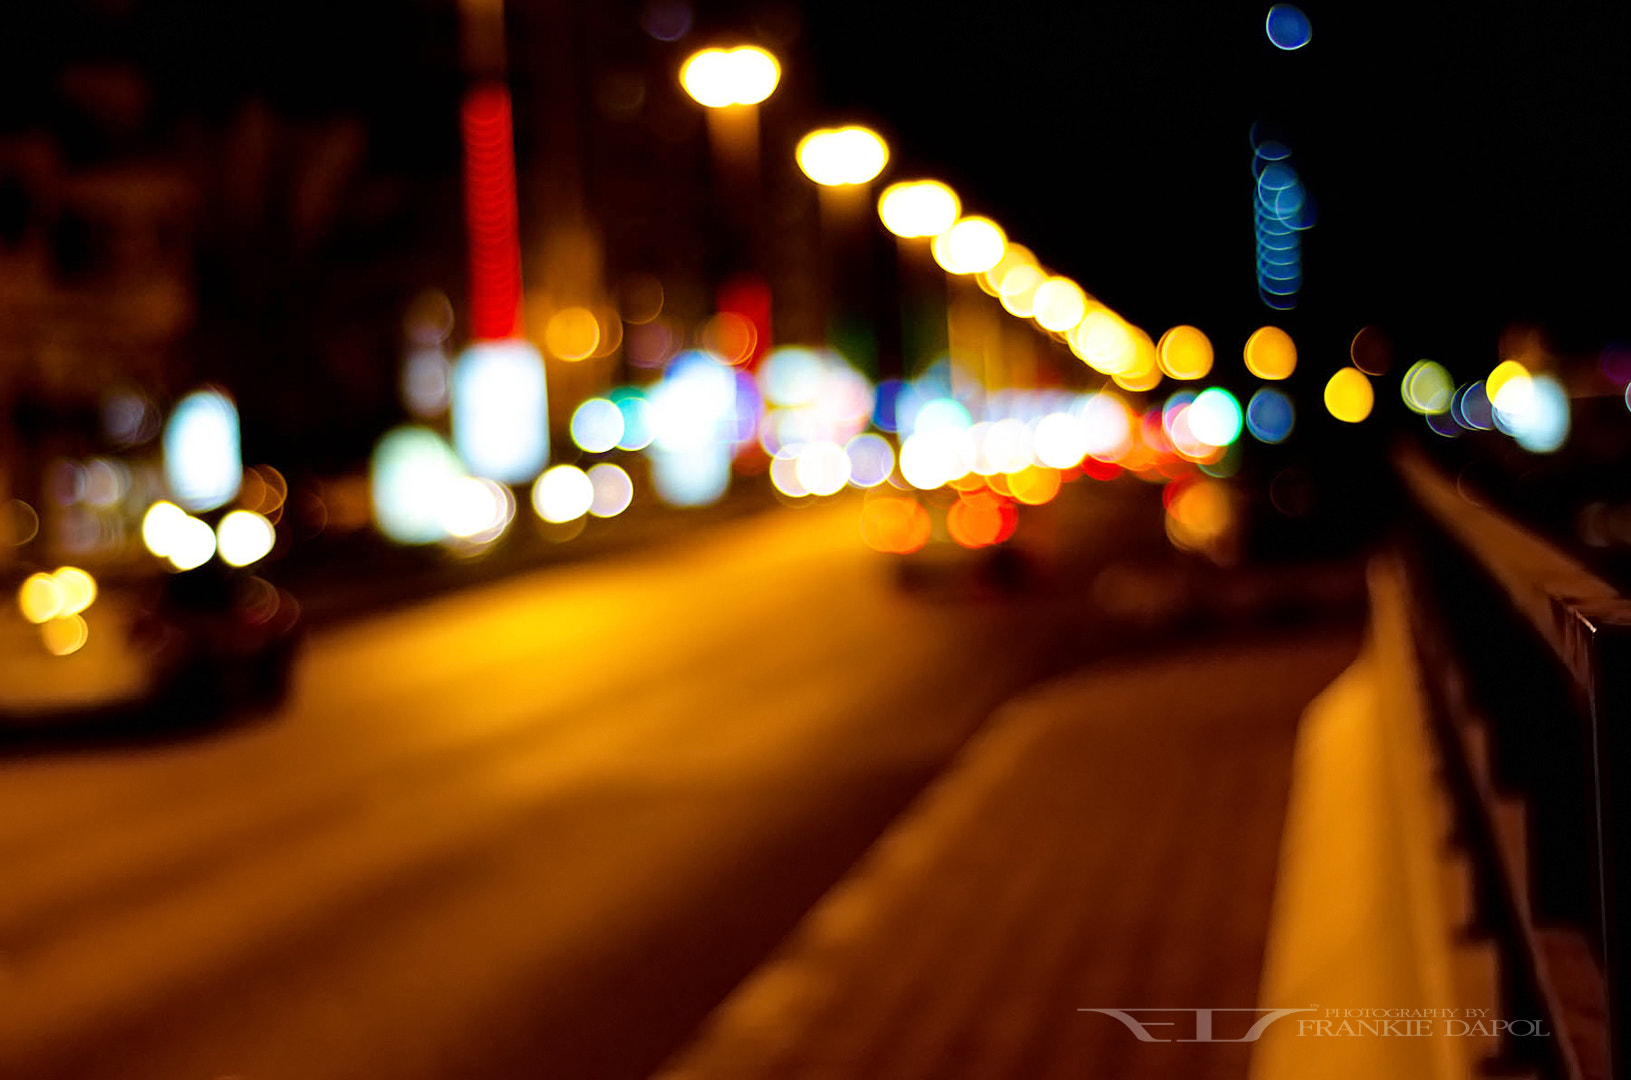 Photograph Street Lights by Frankie Dapol by Frankie Dapol on 500px